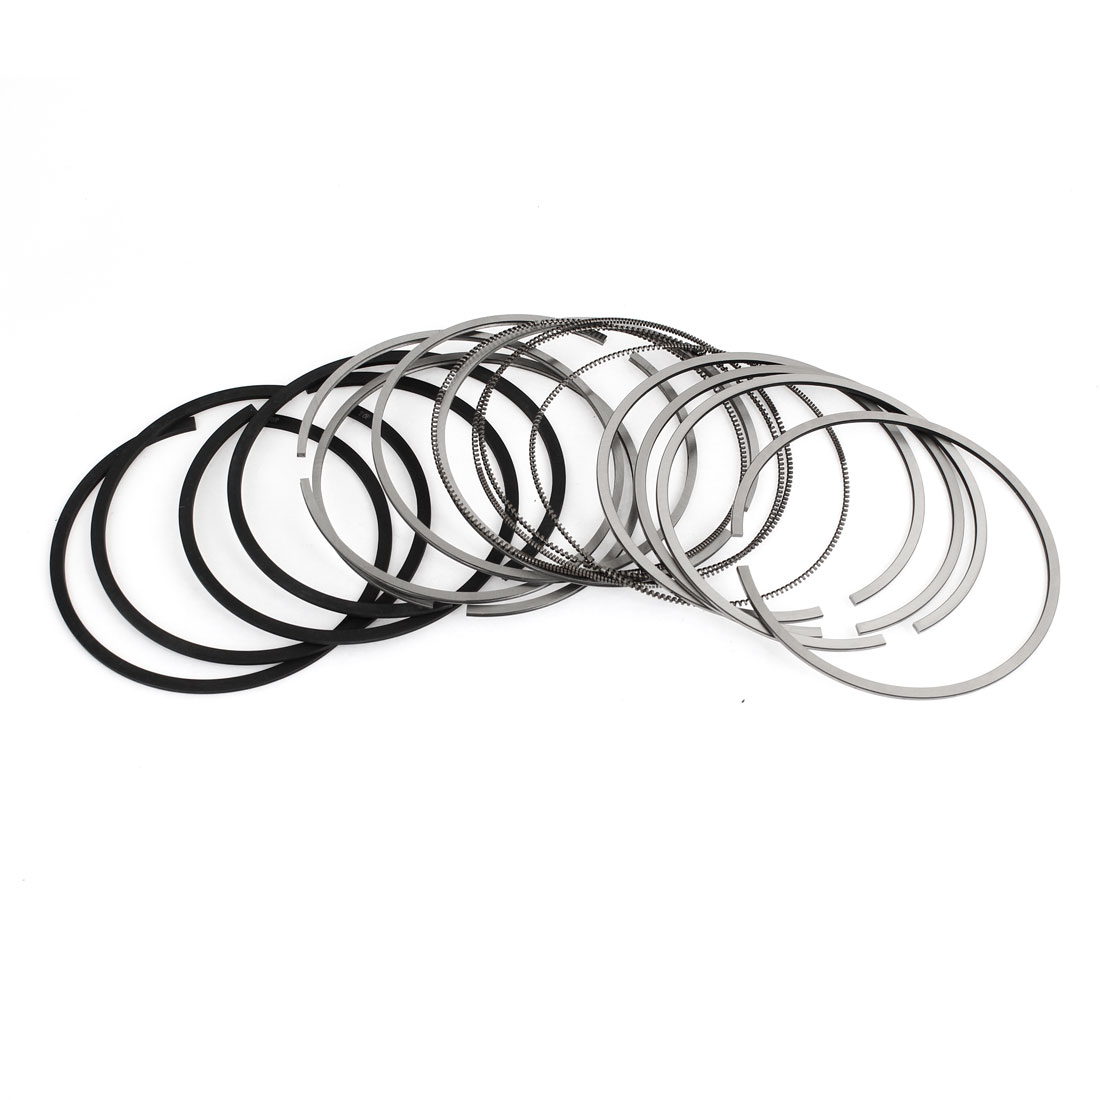 16 in 1 Metal Piston Rings Replacement Set for Vehicle Car 06B198151B